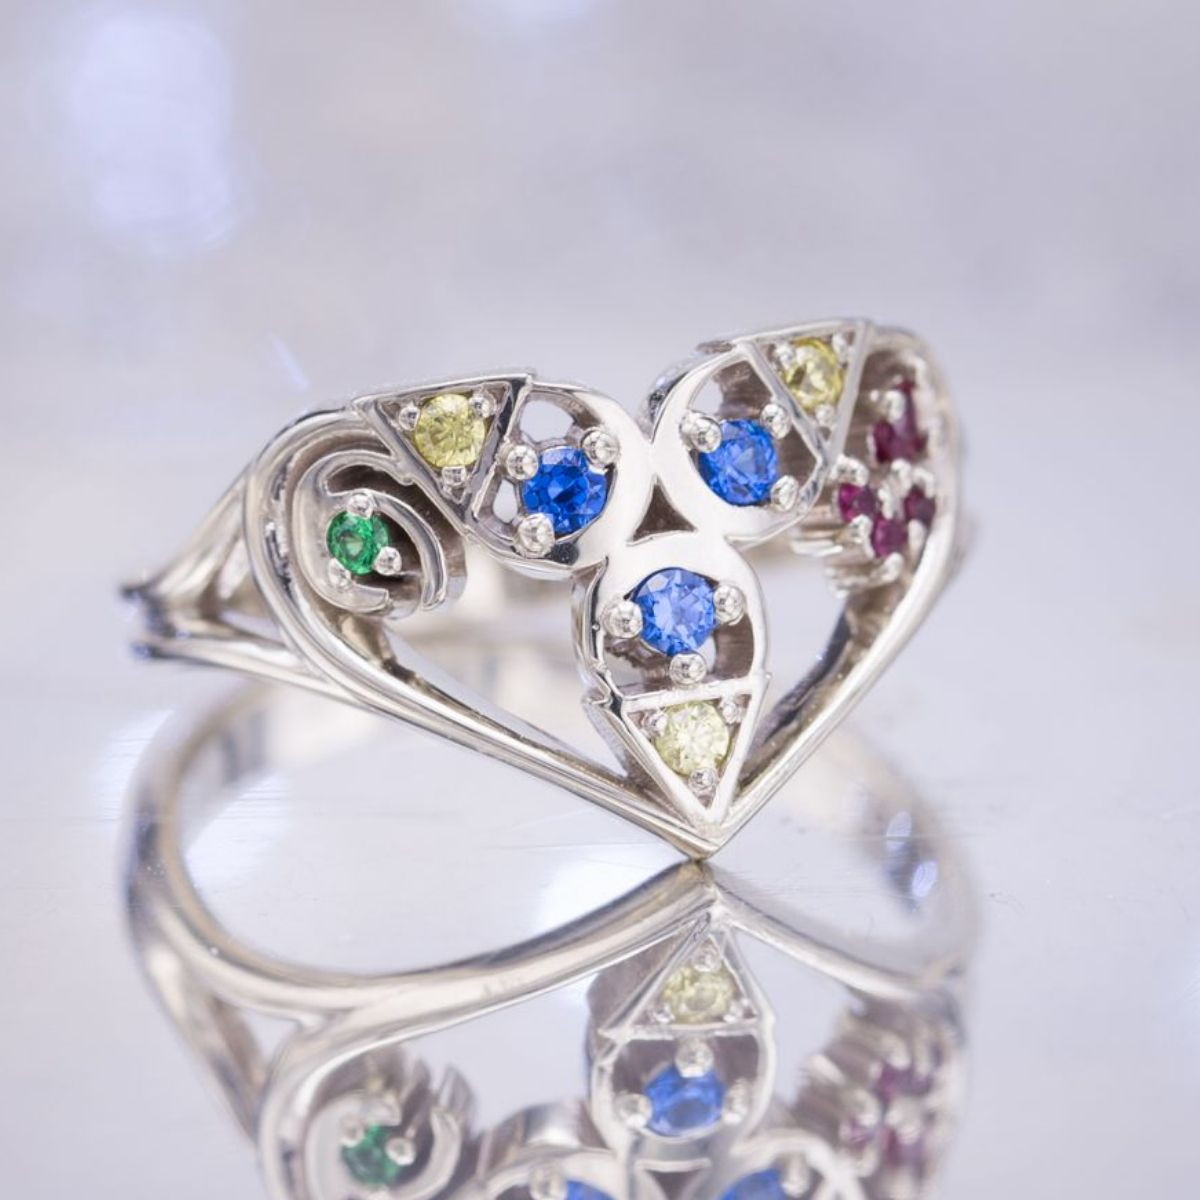 rings stewart colored felsen vert weddings unique engagement opal colorful suzanne martha diamonds